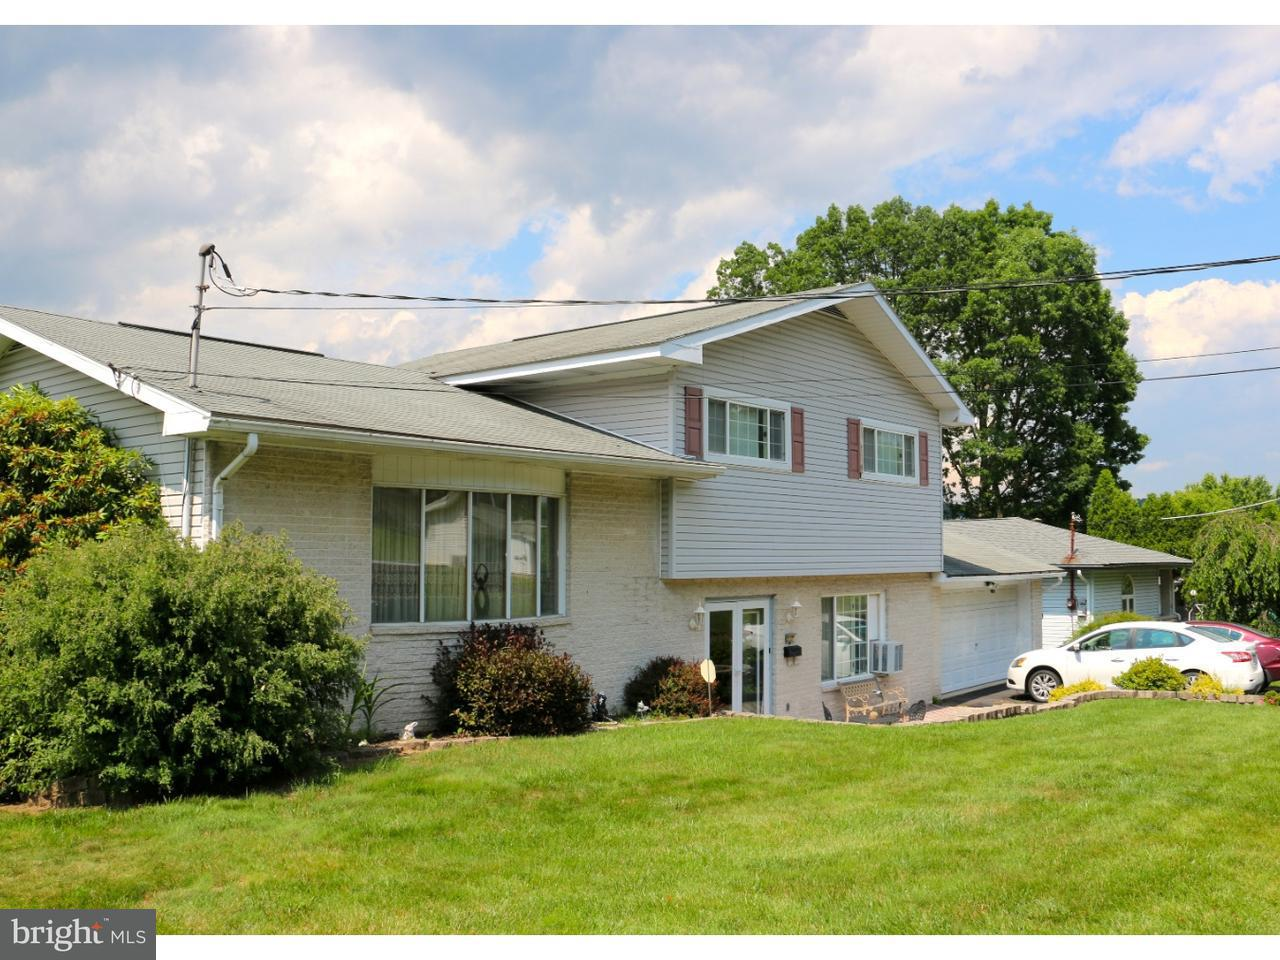 Single Family Home for Sale at 517 W NICHOLAS Street Frackville, Pennsylvania 17931 United States